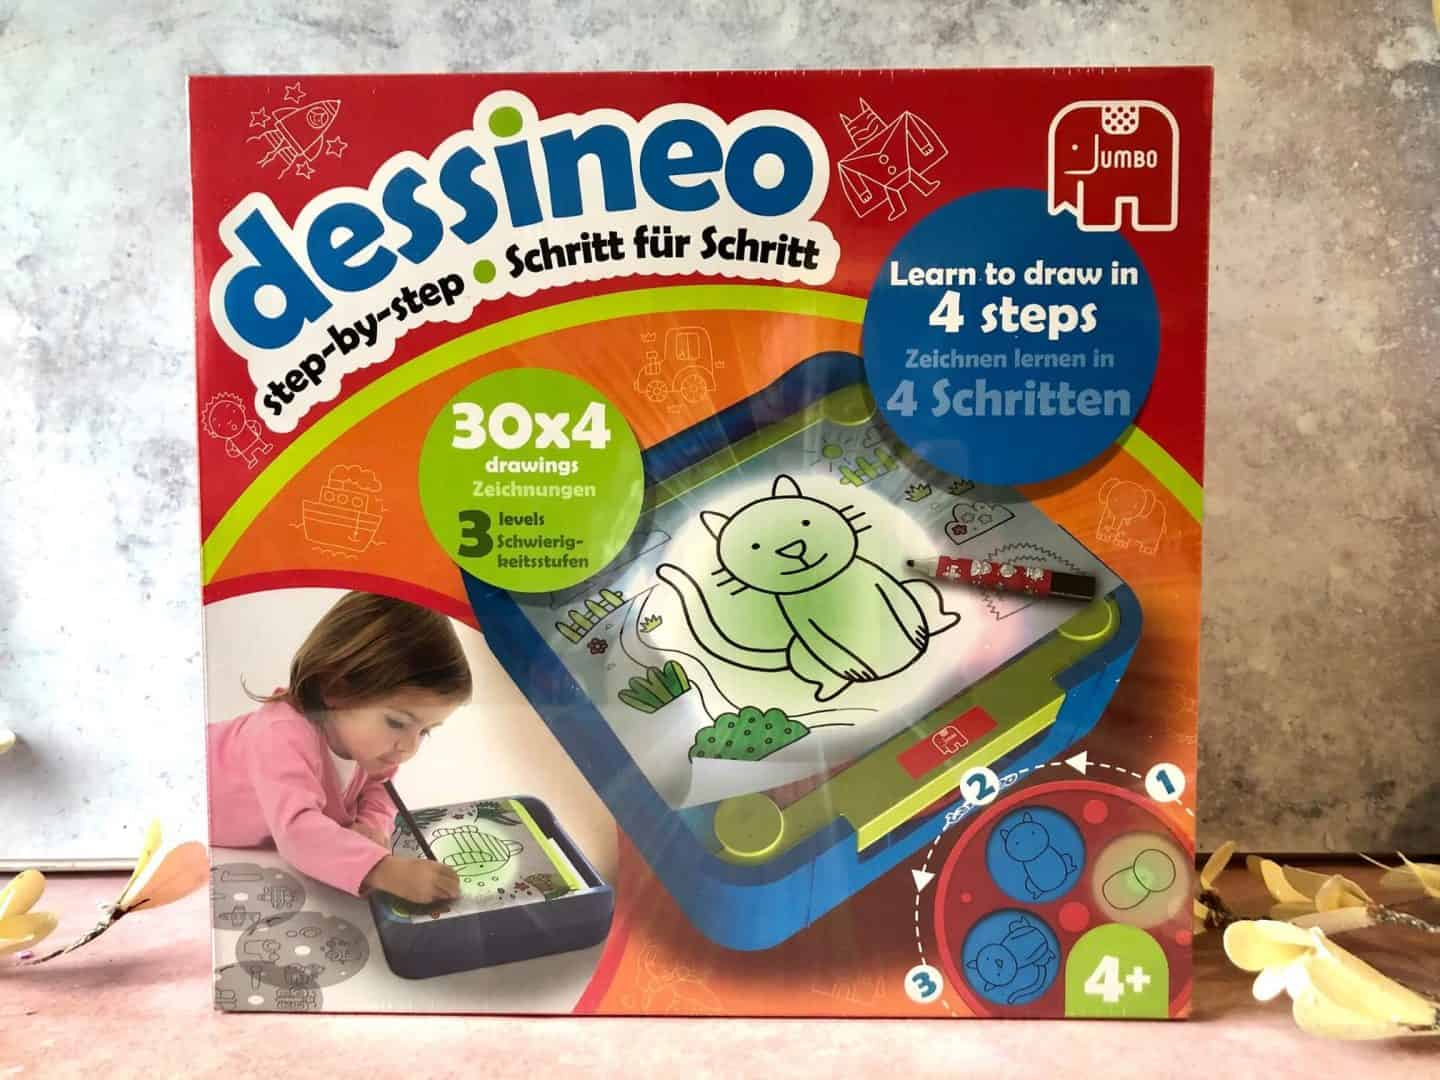 Dessineo - Learn to draw